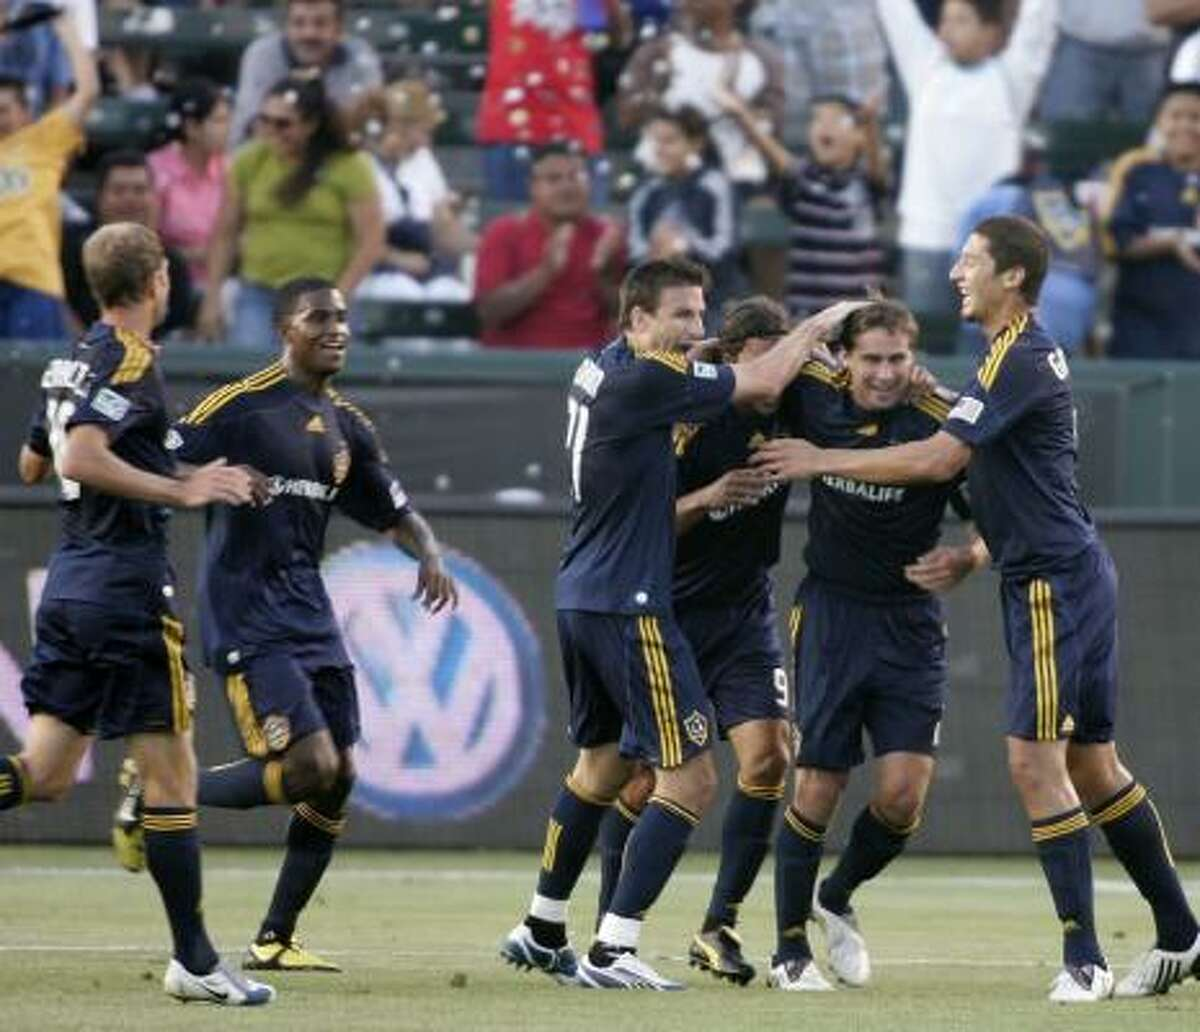 Los Angeles Galaxy teammates congratulate Todd Dunivant, second from right, after he scored the only goal of the game against the Dynamo.